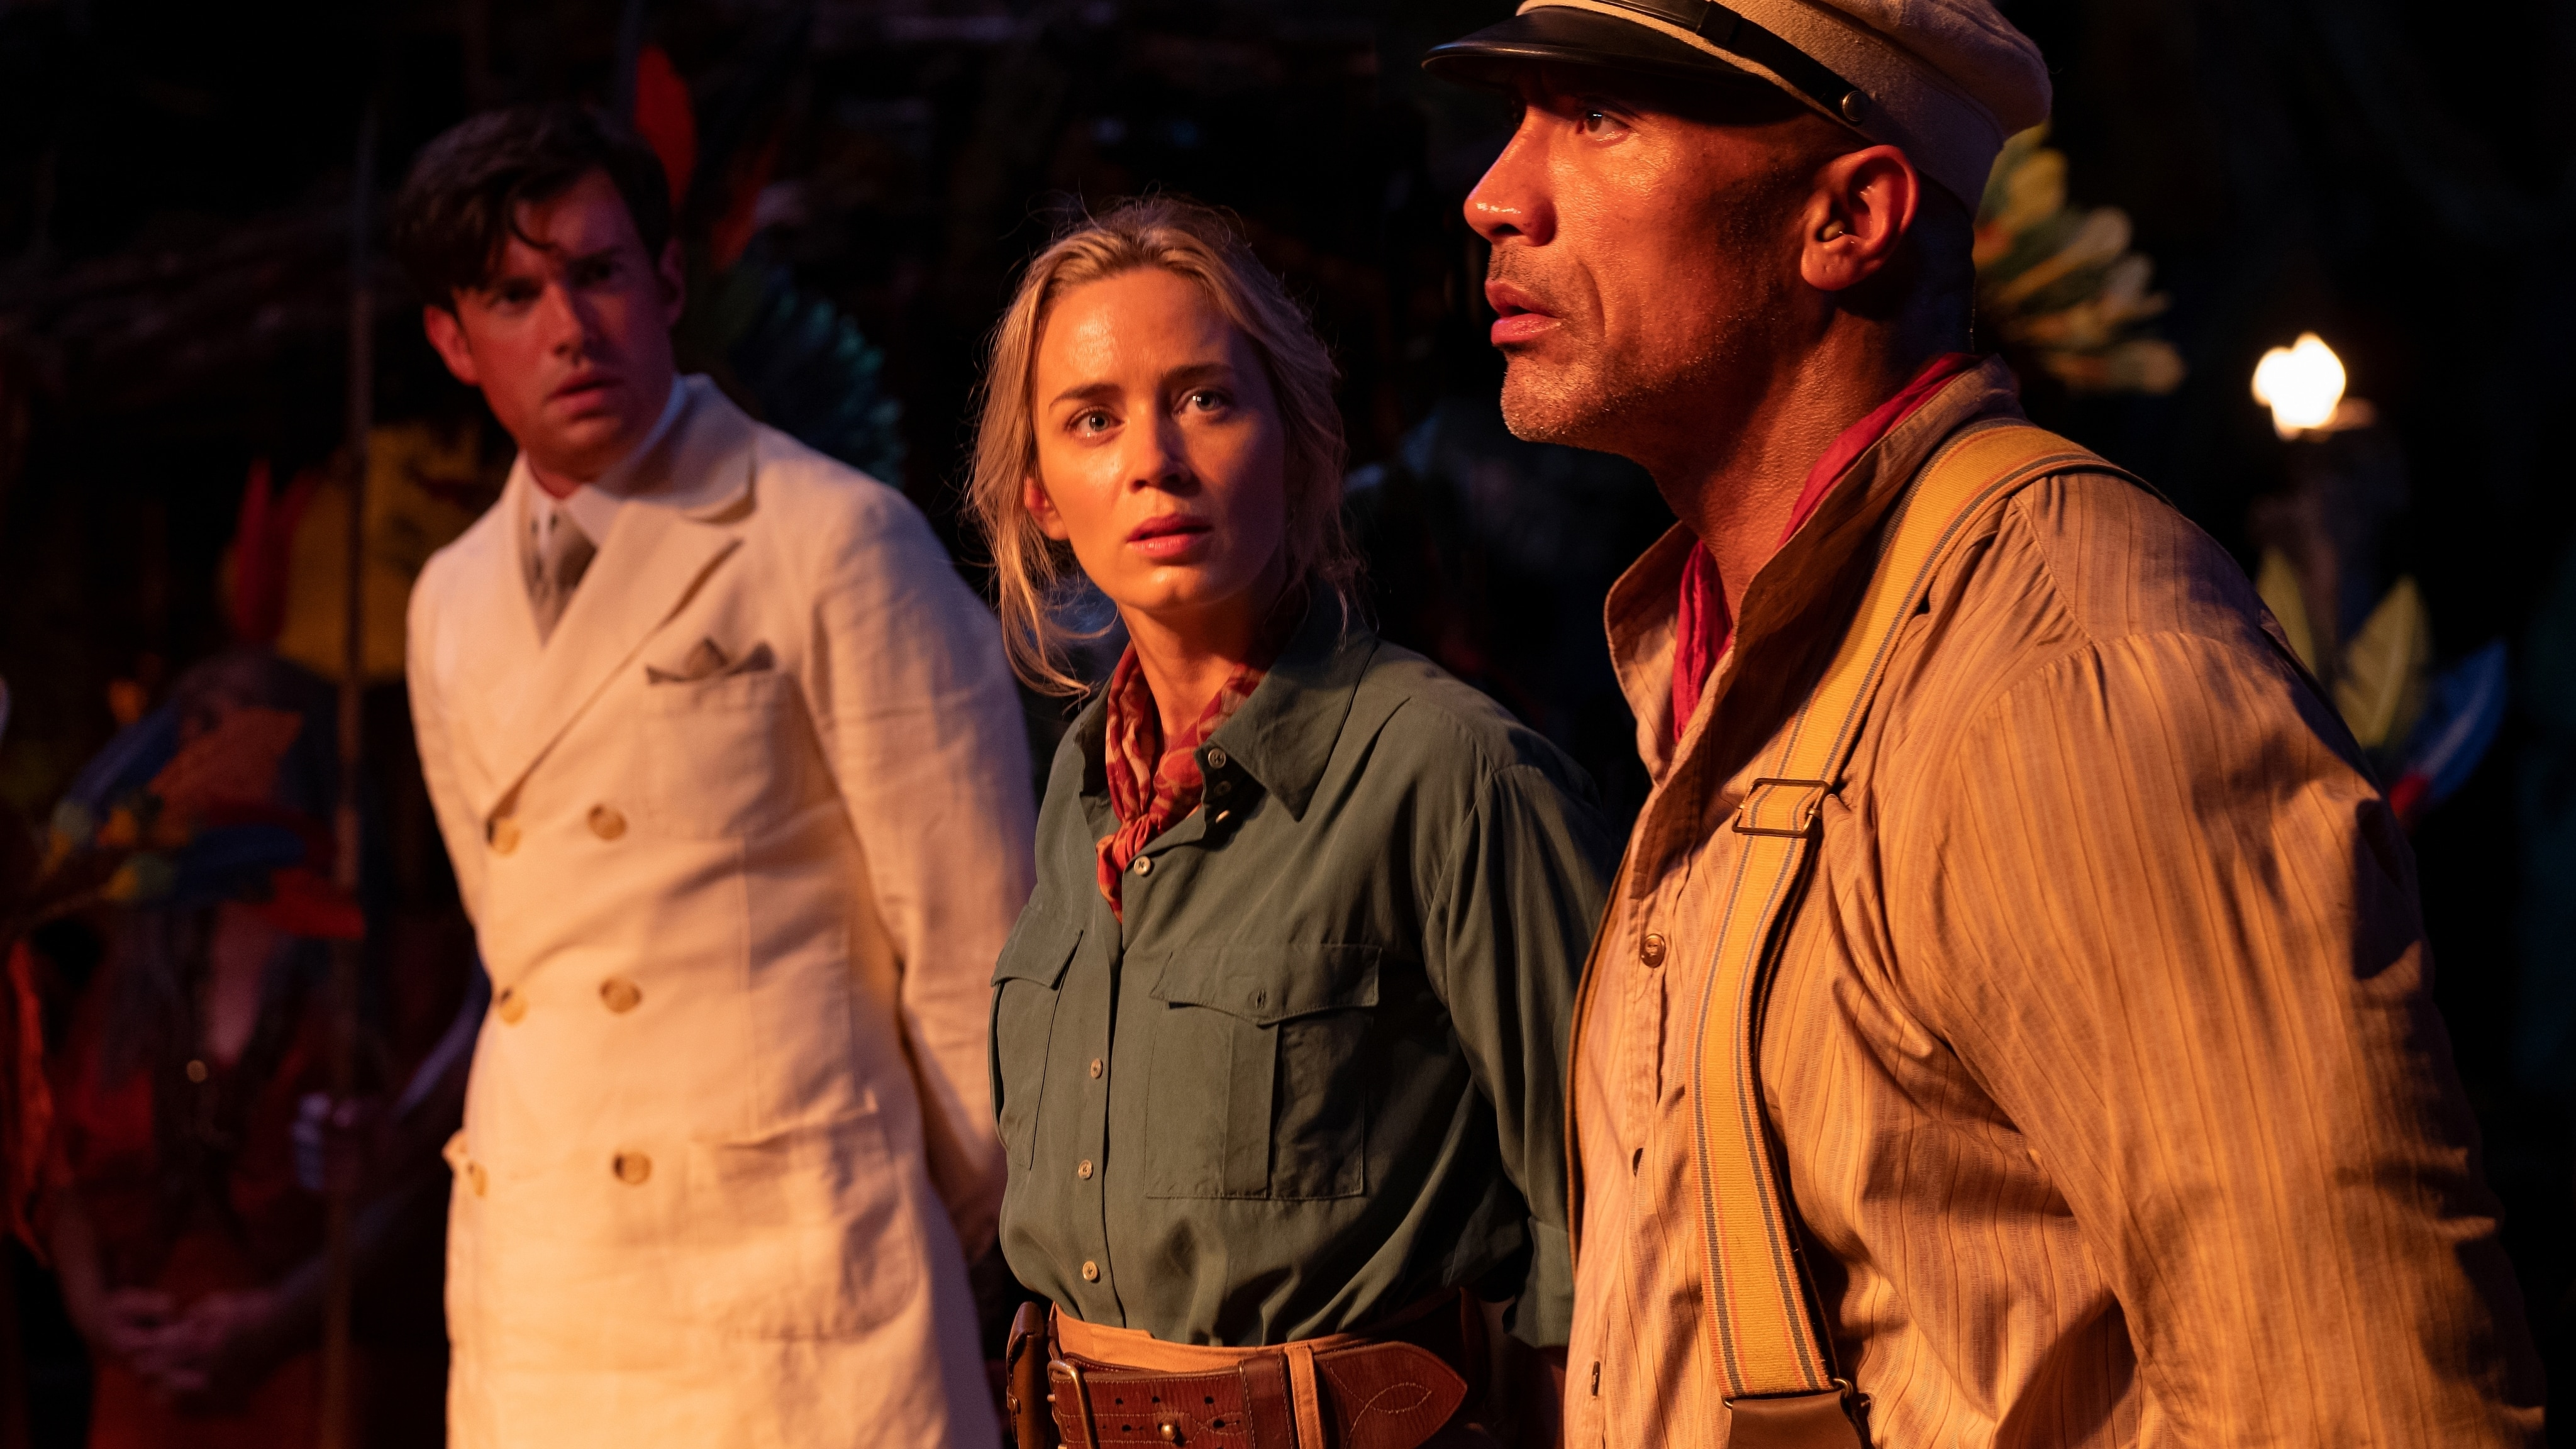 (L-R): Jack Whitehall as Macgregor, Emily Blunt as Lily and Dwayne Johnson as Frank IN Disney's JUNGLE CRUISE. Photo by Frank Masi. © 2021 Disney Enterprises, Inc. All Rights Reserved.